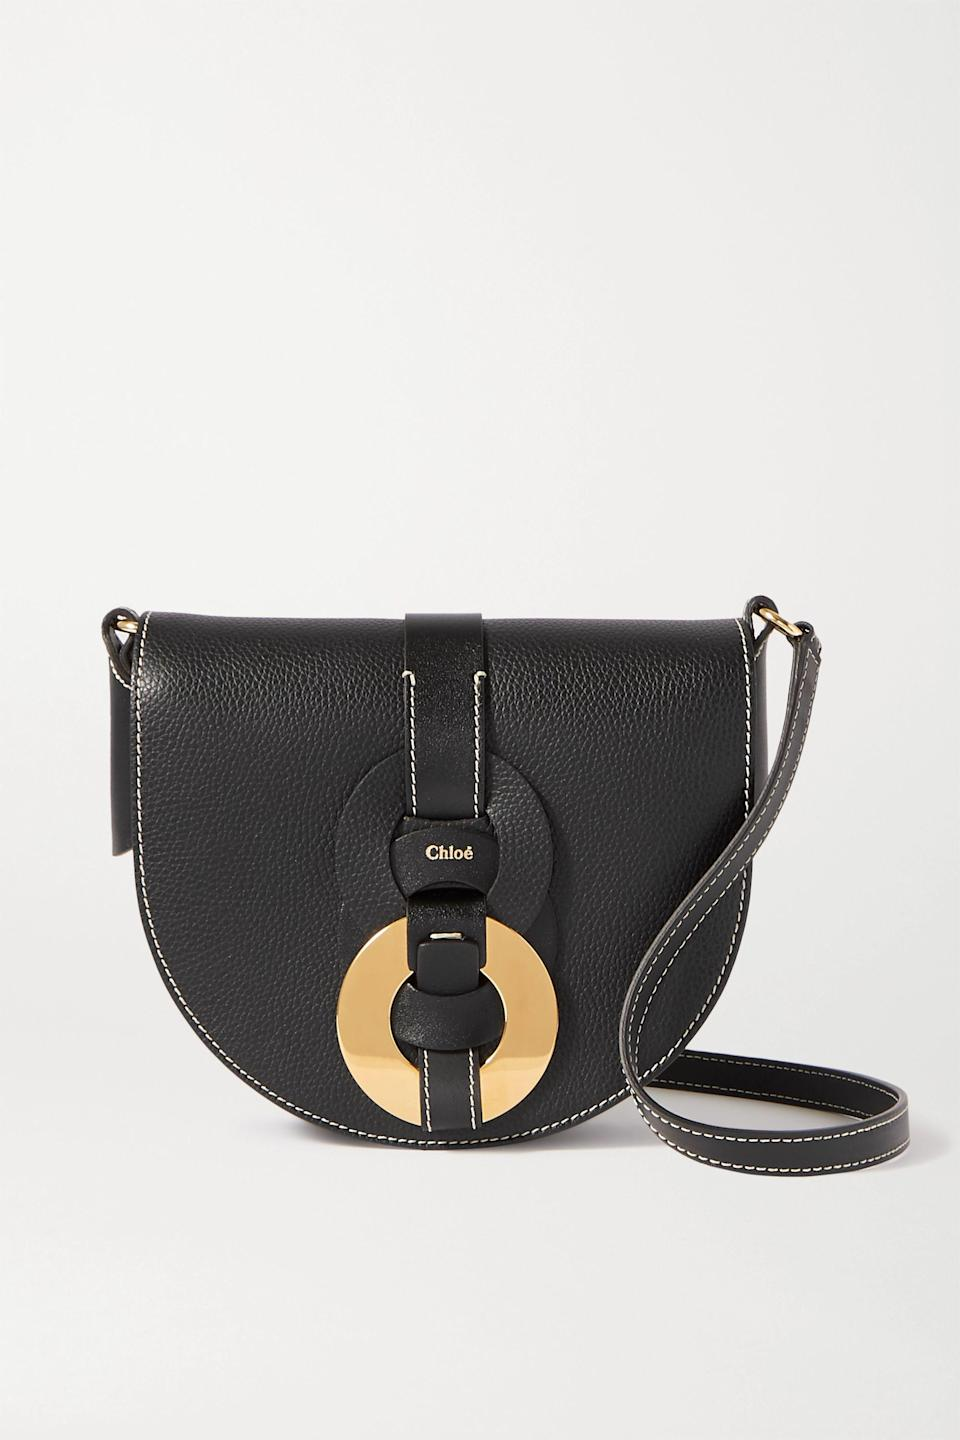 """<p><strong>Chloé</strong></p><p>net-a-porter.com</p><p><strong>$1250.00</strong></p><p><a href=""""https://click.linksynergy.com/deeplink?id=6Km1lFswsiY&mid=24449&murl=https%3A%2F%2Fwww.net-a-porter.com%2Fen-us%2Fshop%2Fproduct%2Fchloe%2Fdarryl-small-textured-leather-shoulder-bag%2F1298127"""" rel=""""nofollow noopener"""" target=""""_blank"""" data-ylk=""""slk:Shop Now"""" class=""""link rapid-noclick-resp"""">Shop Now</a></p><p>This bag feels like the new kid in town who everyone wants to be seen with. It simply upgrades the iconic details that make Chloé iconic, like contrast stitching, geometric shapes, and equestrian-inspired silhouettes.</p>"""